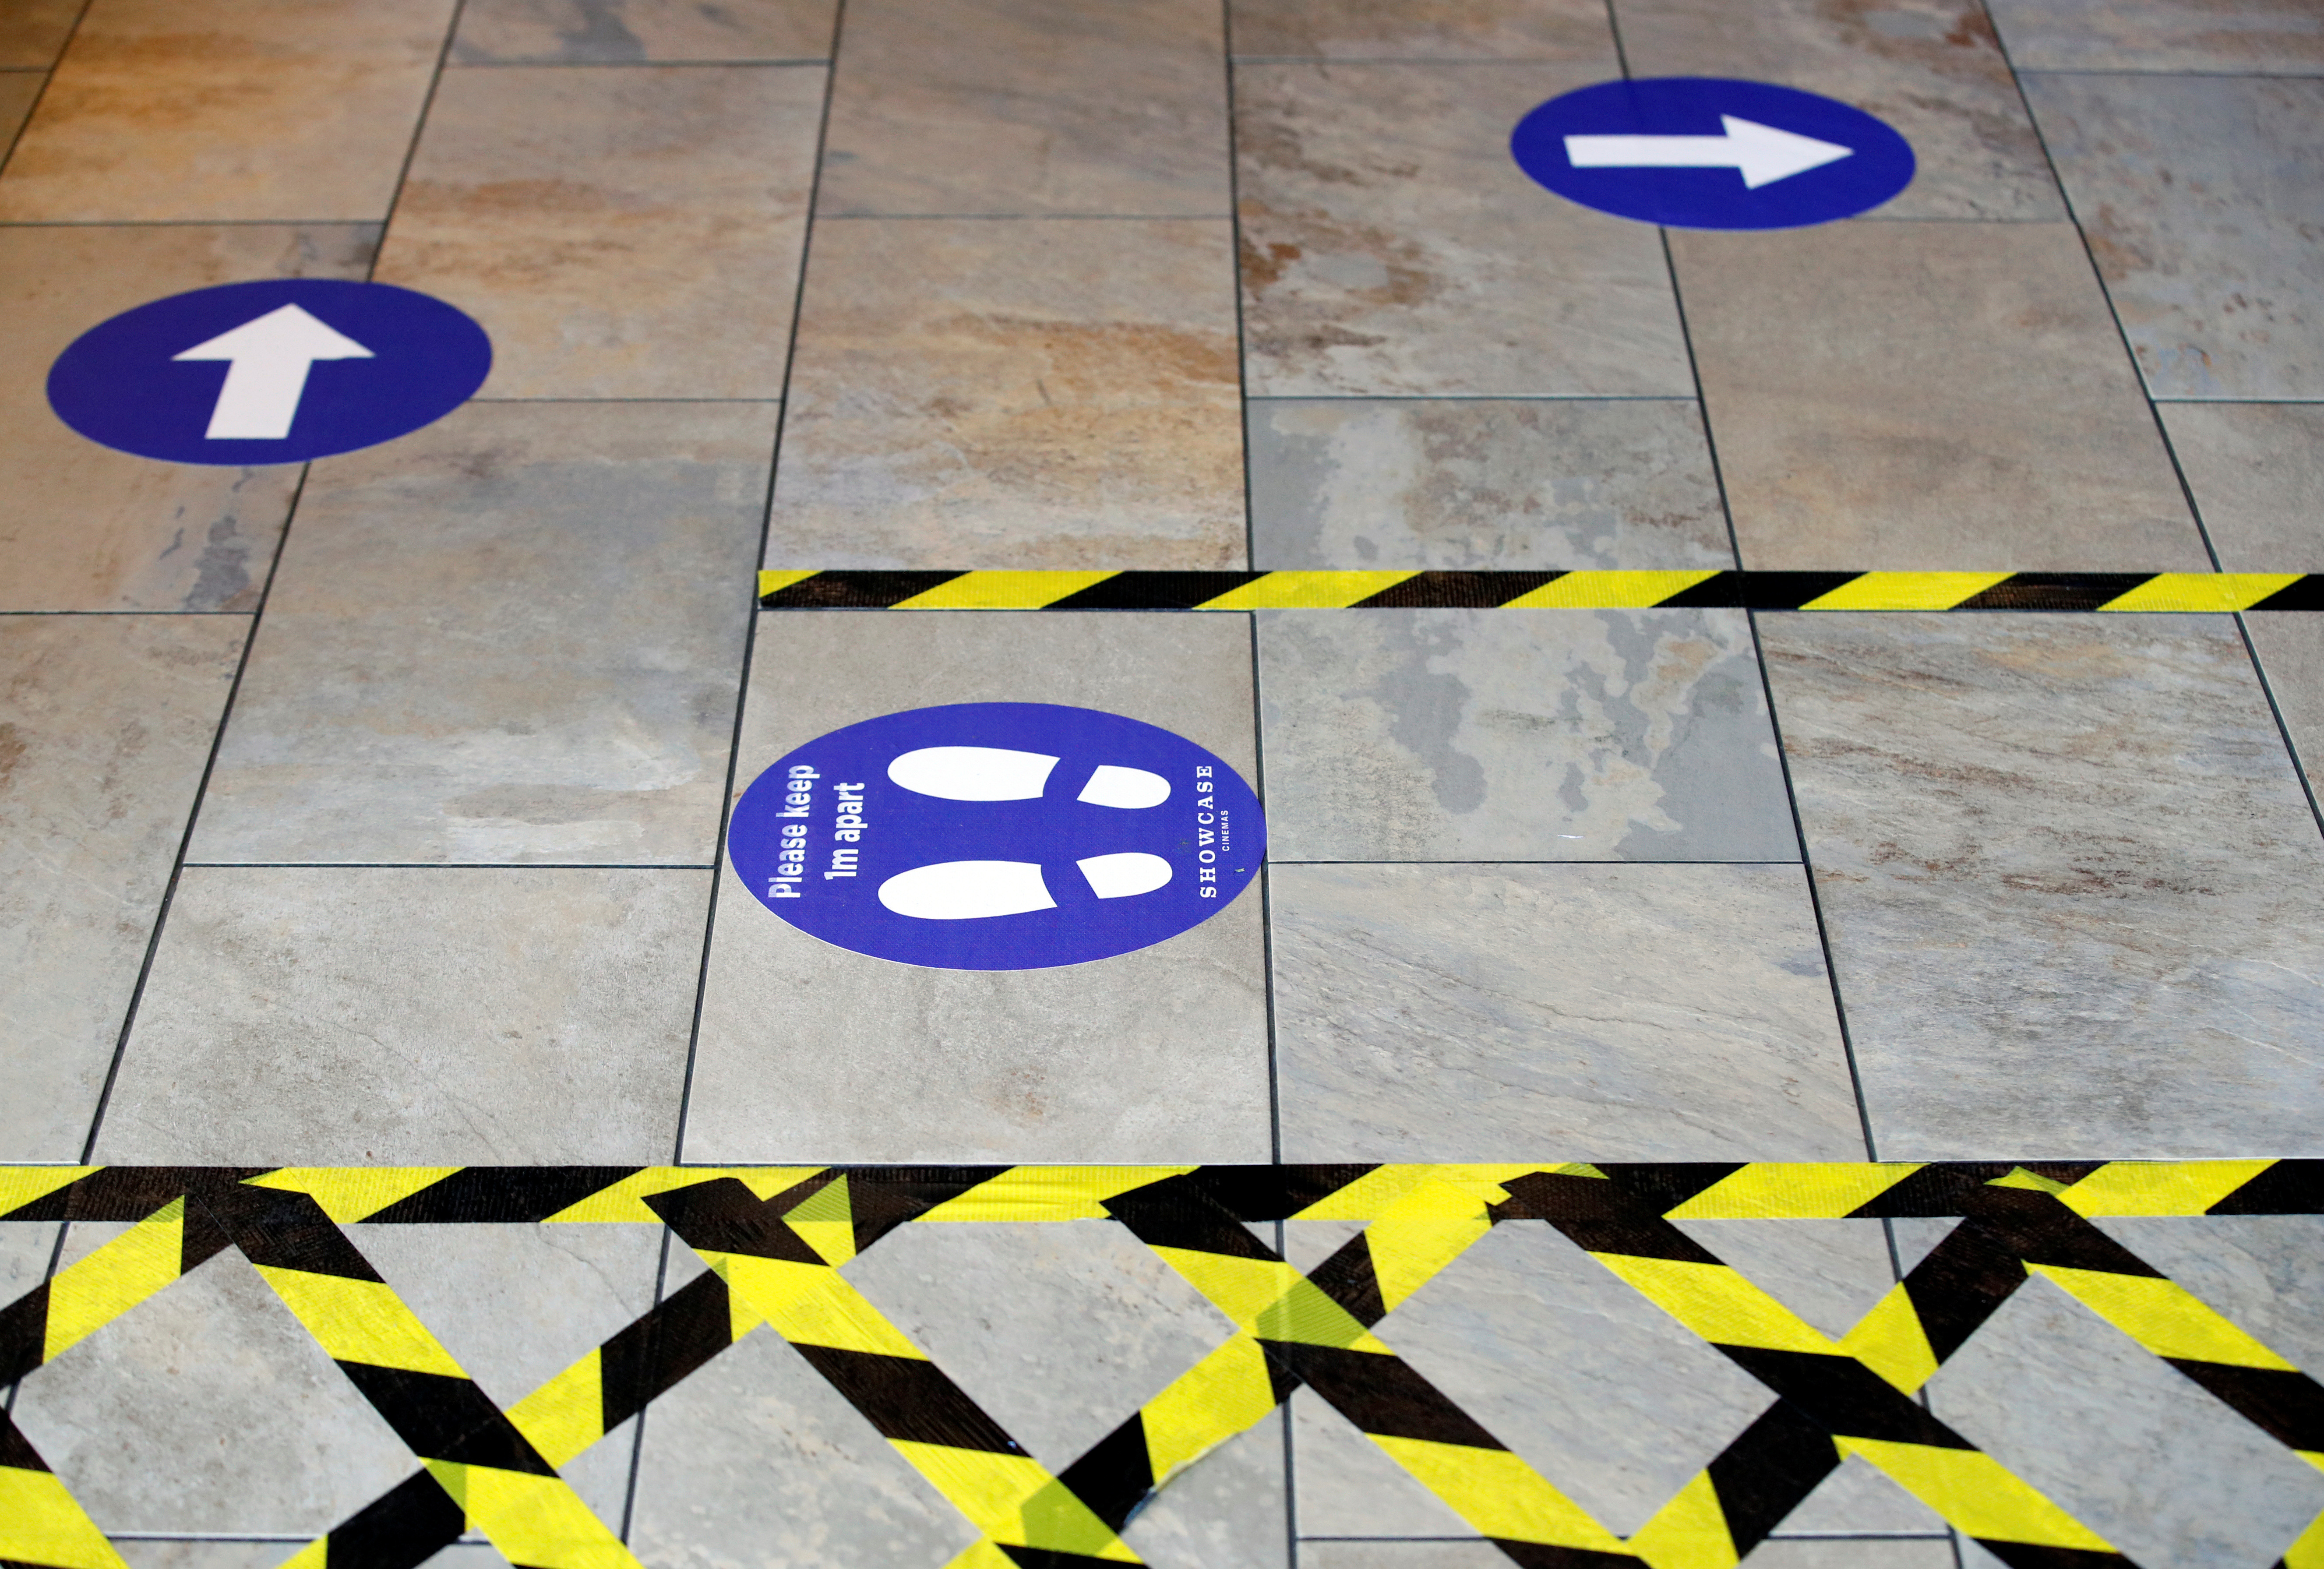 A social distancing sign and markers are pictured on the floor